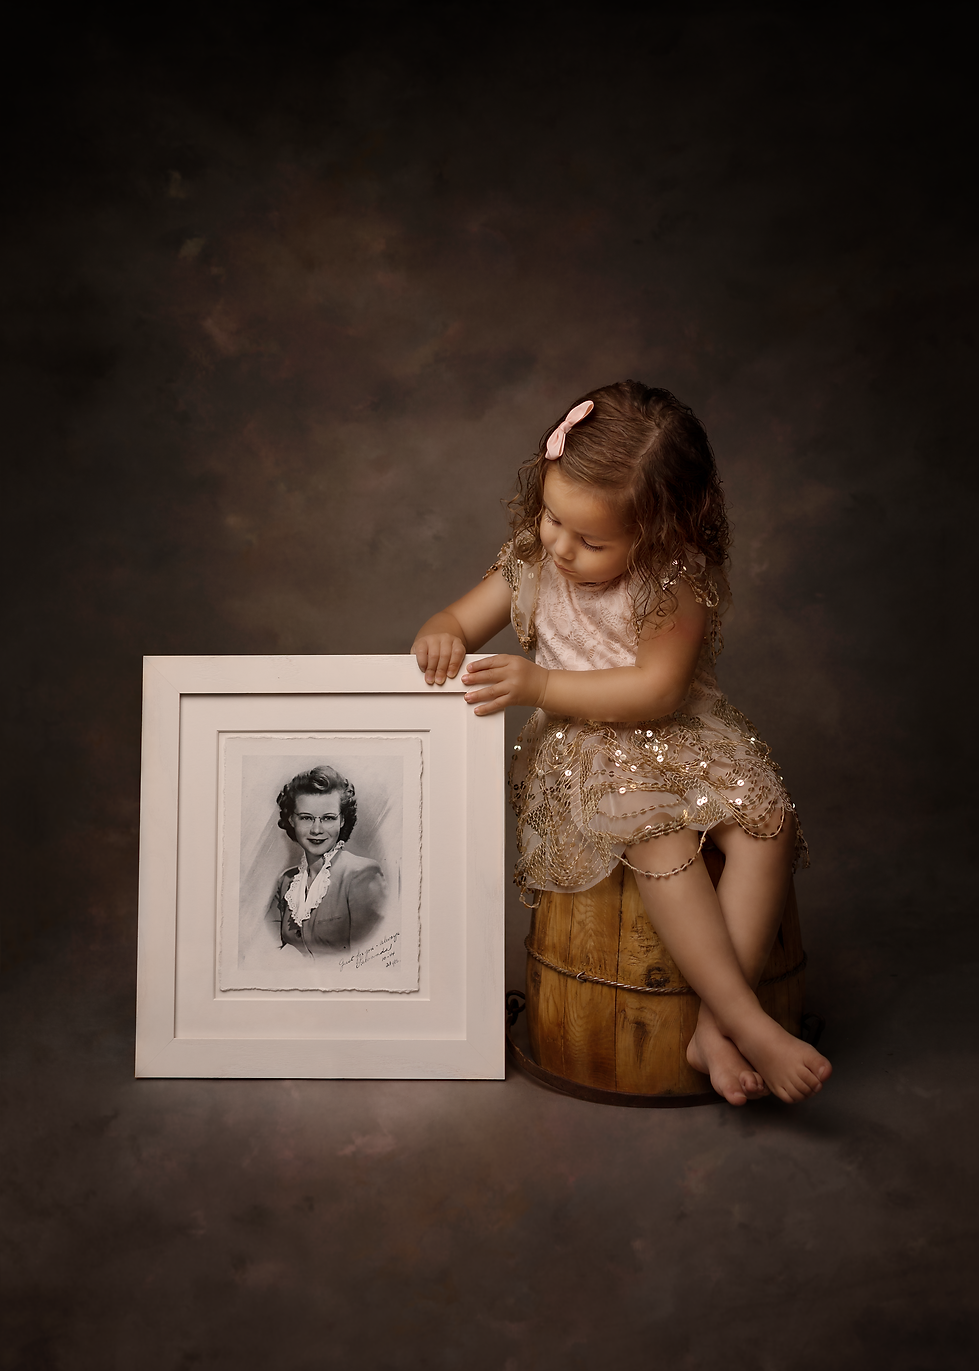 A young girl holding a photograph of her great grandmother from World War Two